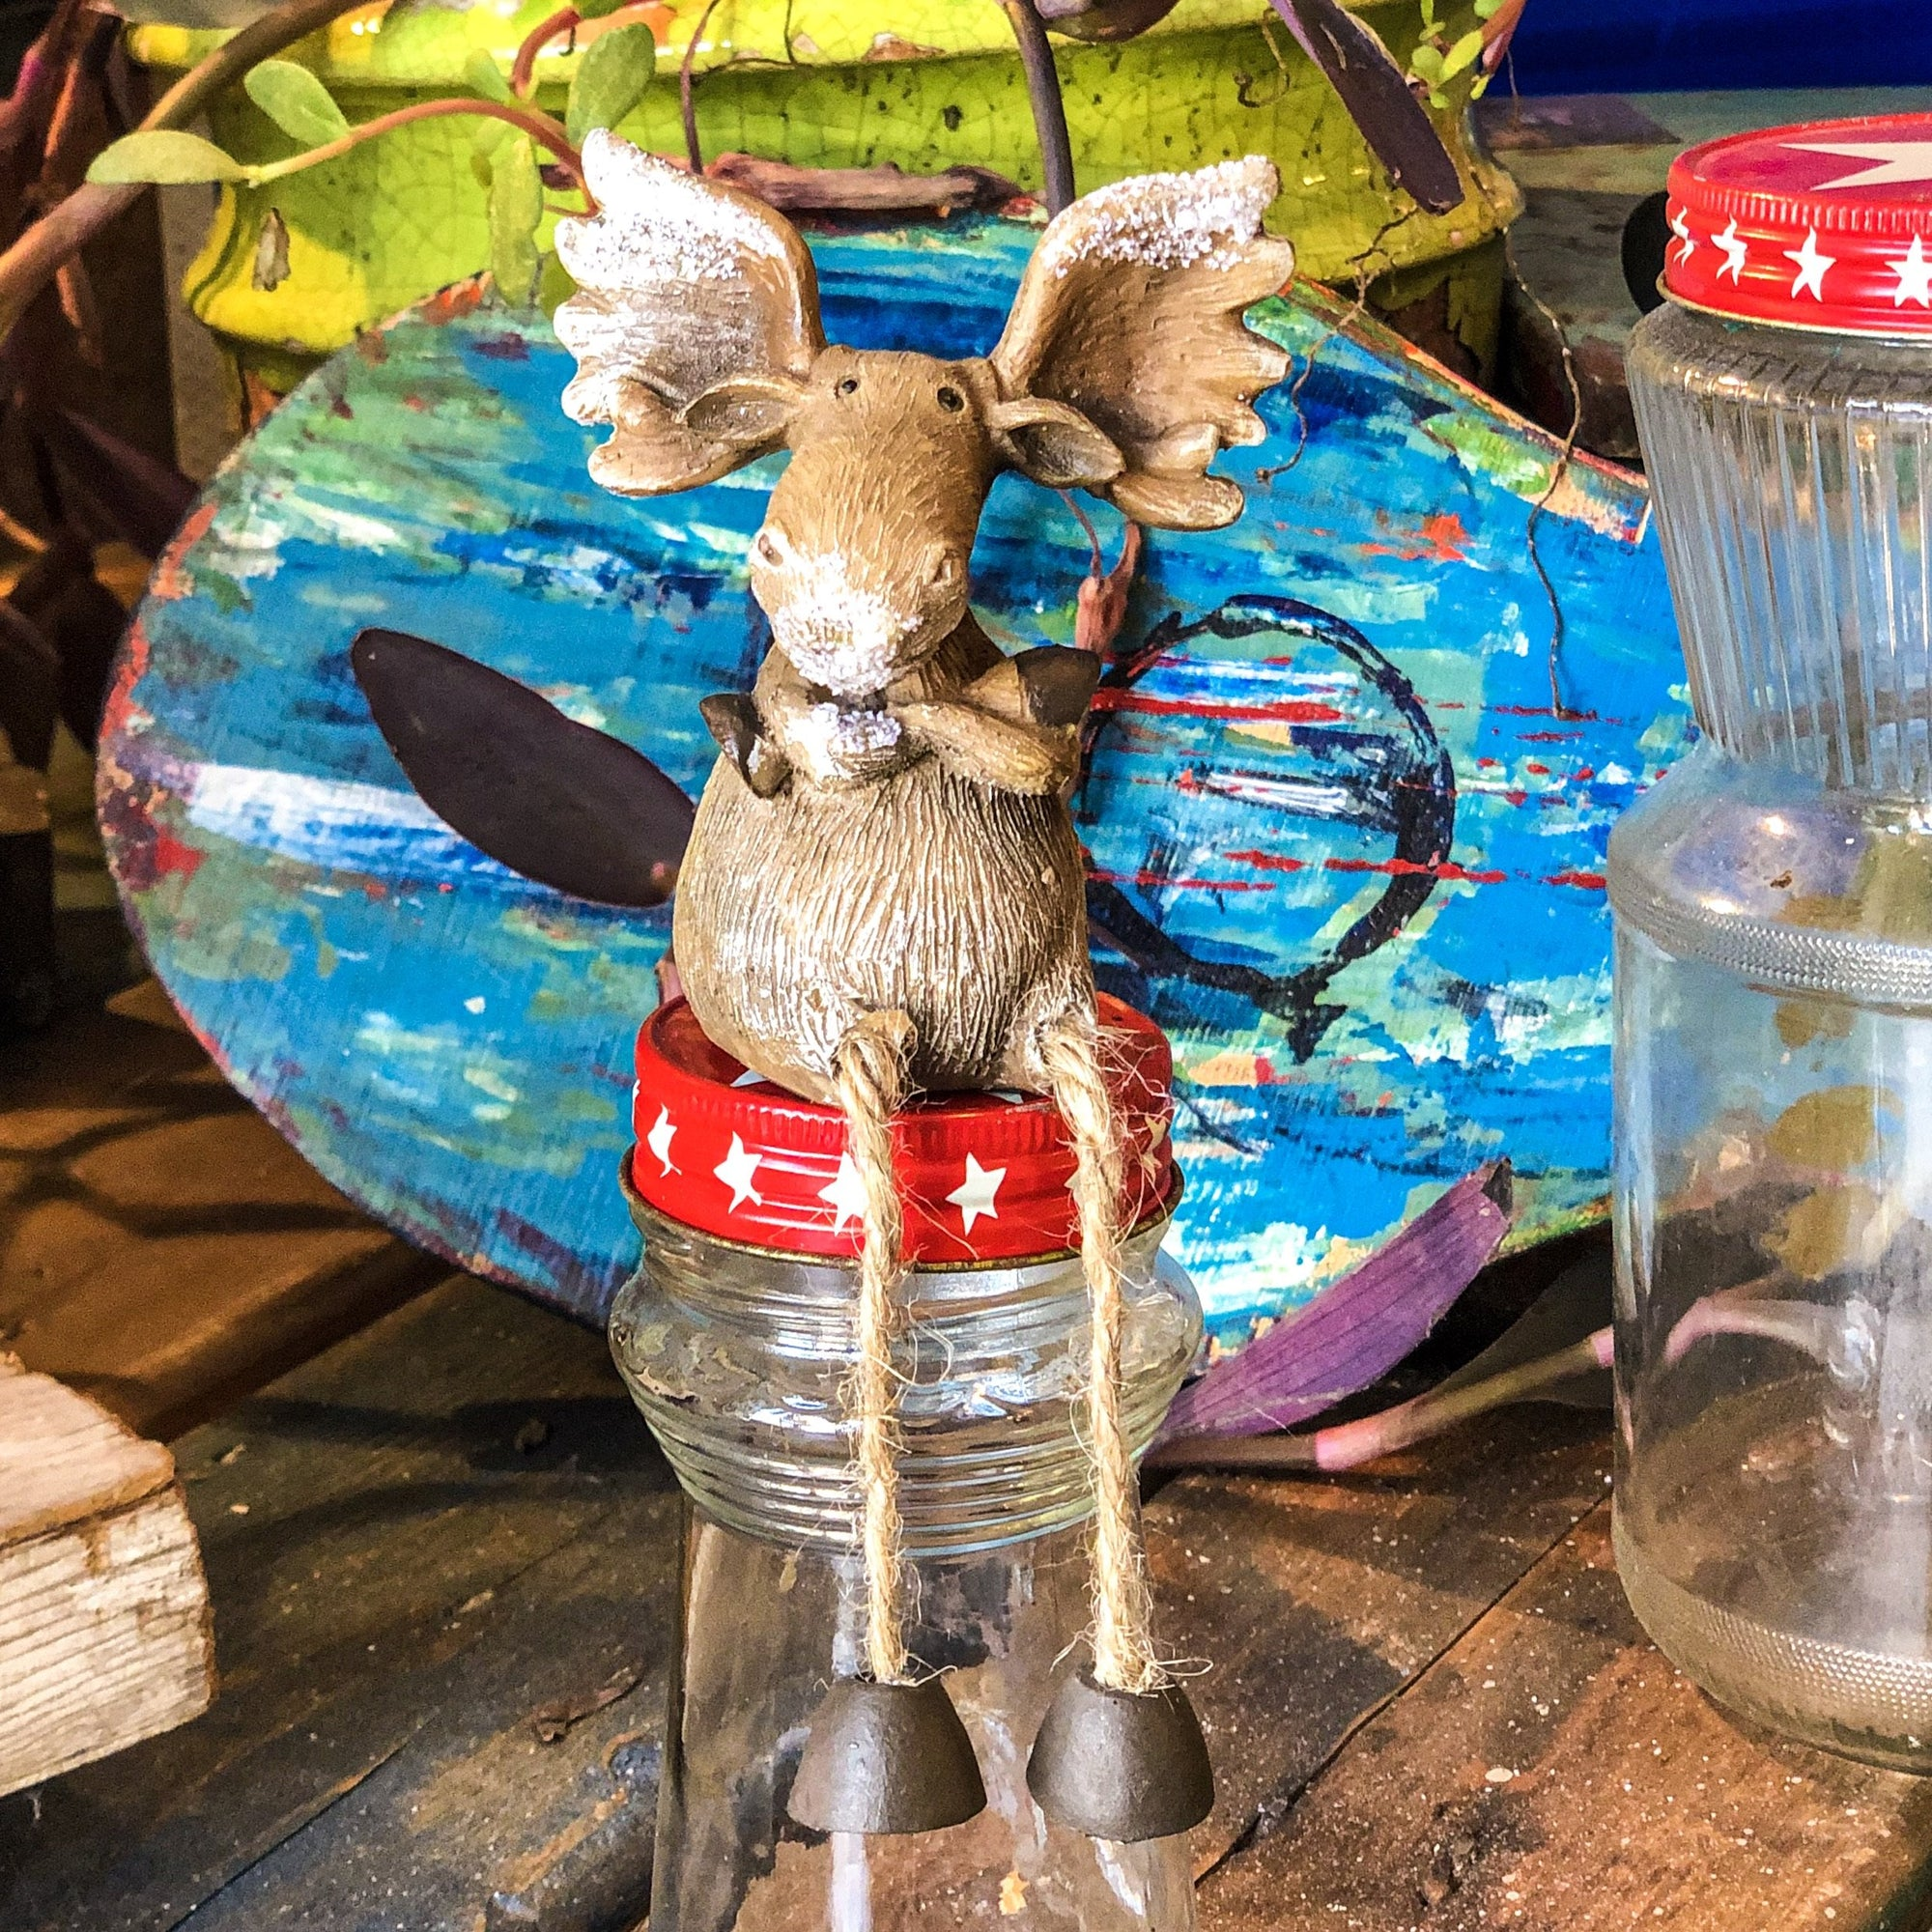 Buy Fred the Christmas Moose Shelf Sitter from Walking Pants Curiosities, the Most un-General Gift Store in Downtown Memphis, Tennessee!